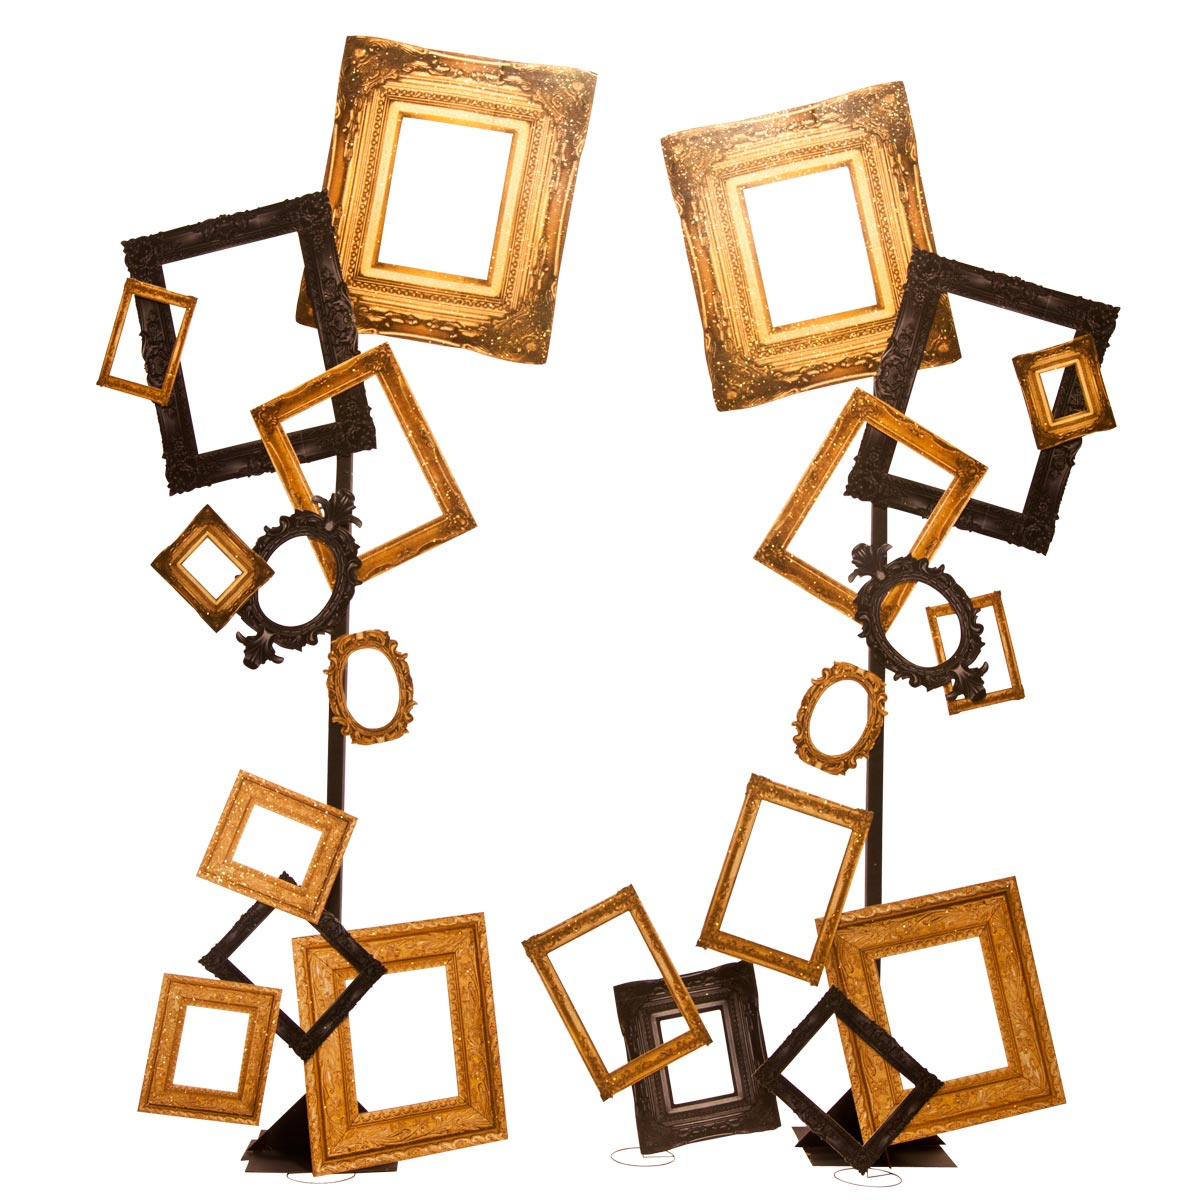 Reflections of You Frame Stands Kit (set of 5)